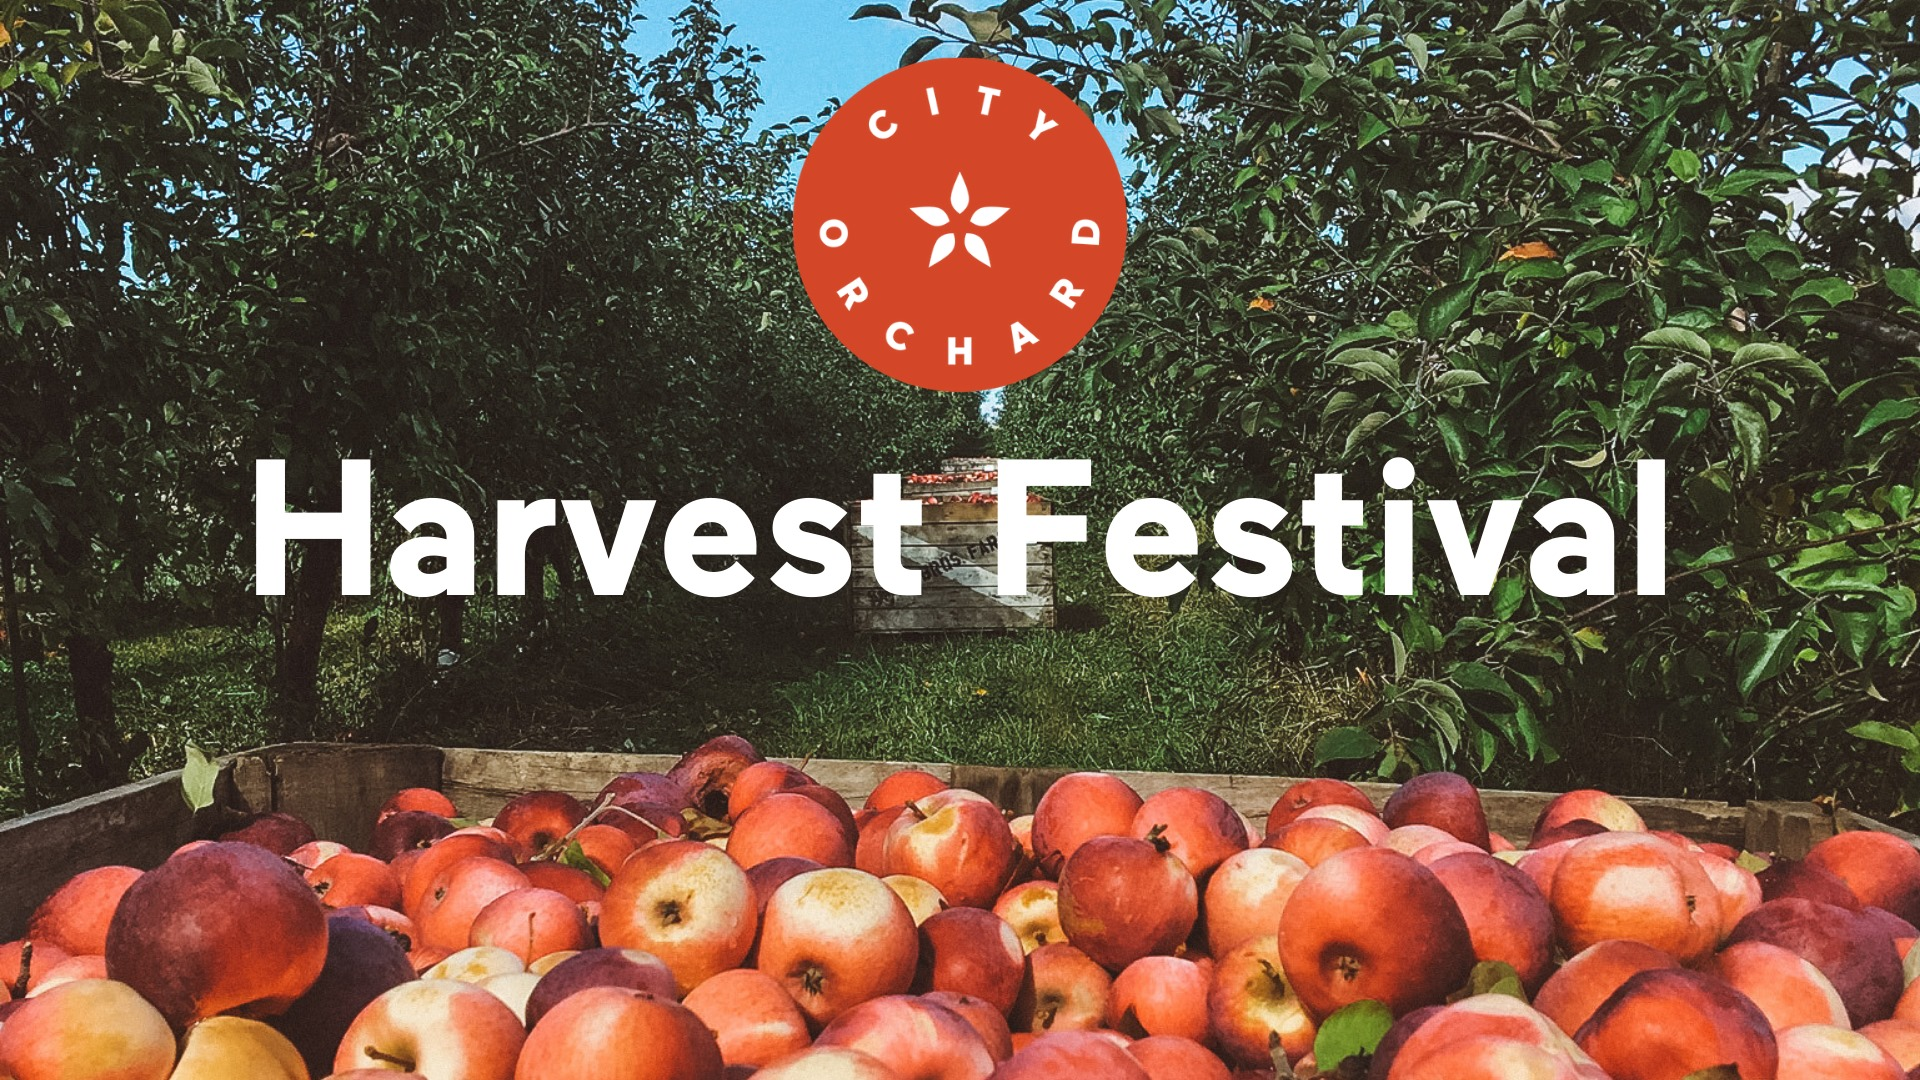 Harvest Festival at City Orchard